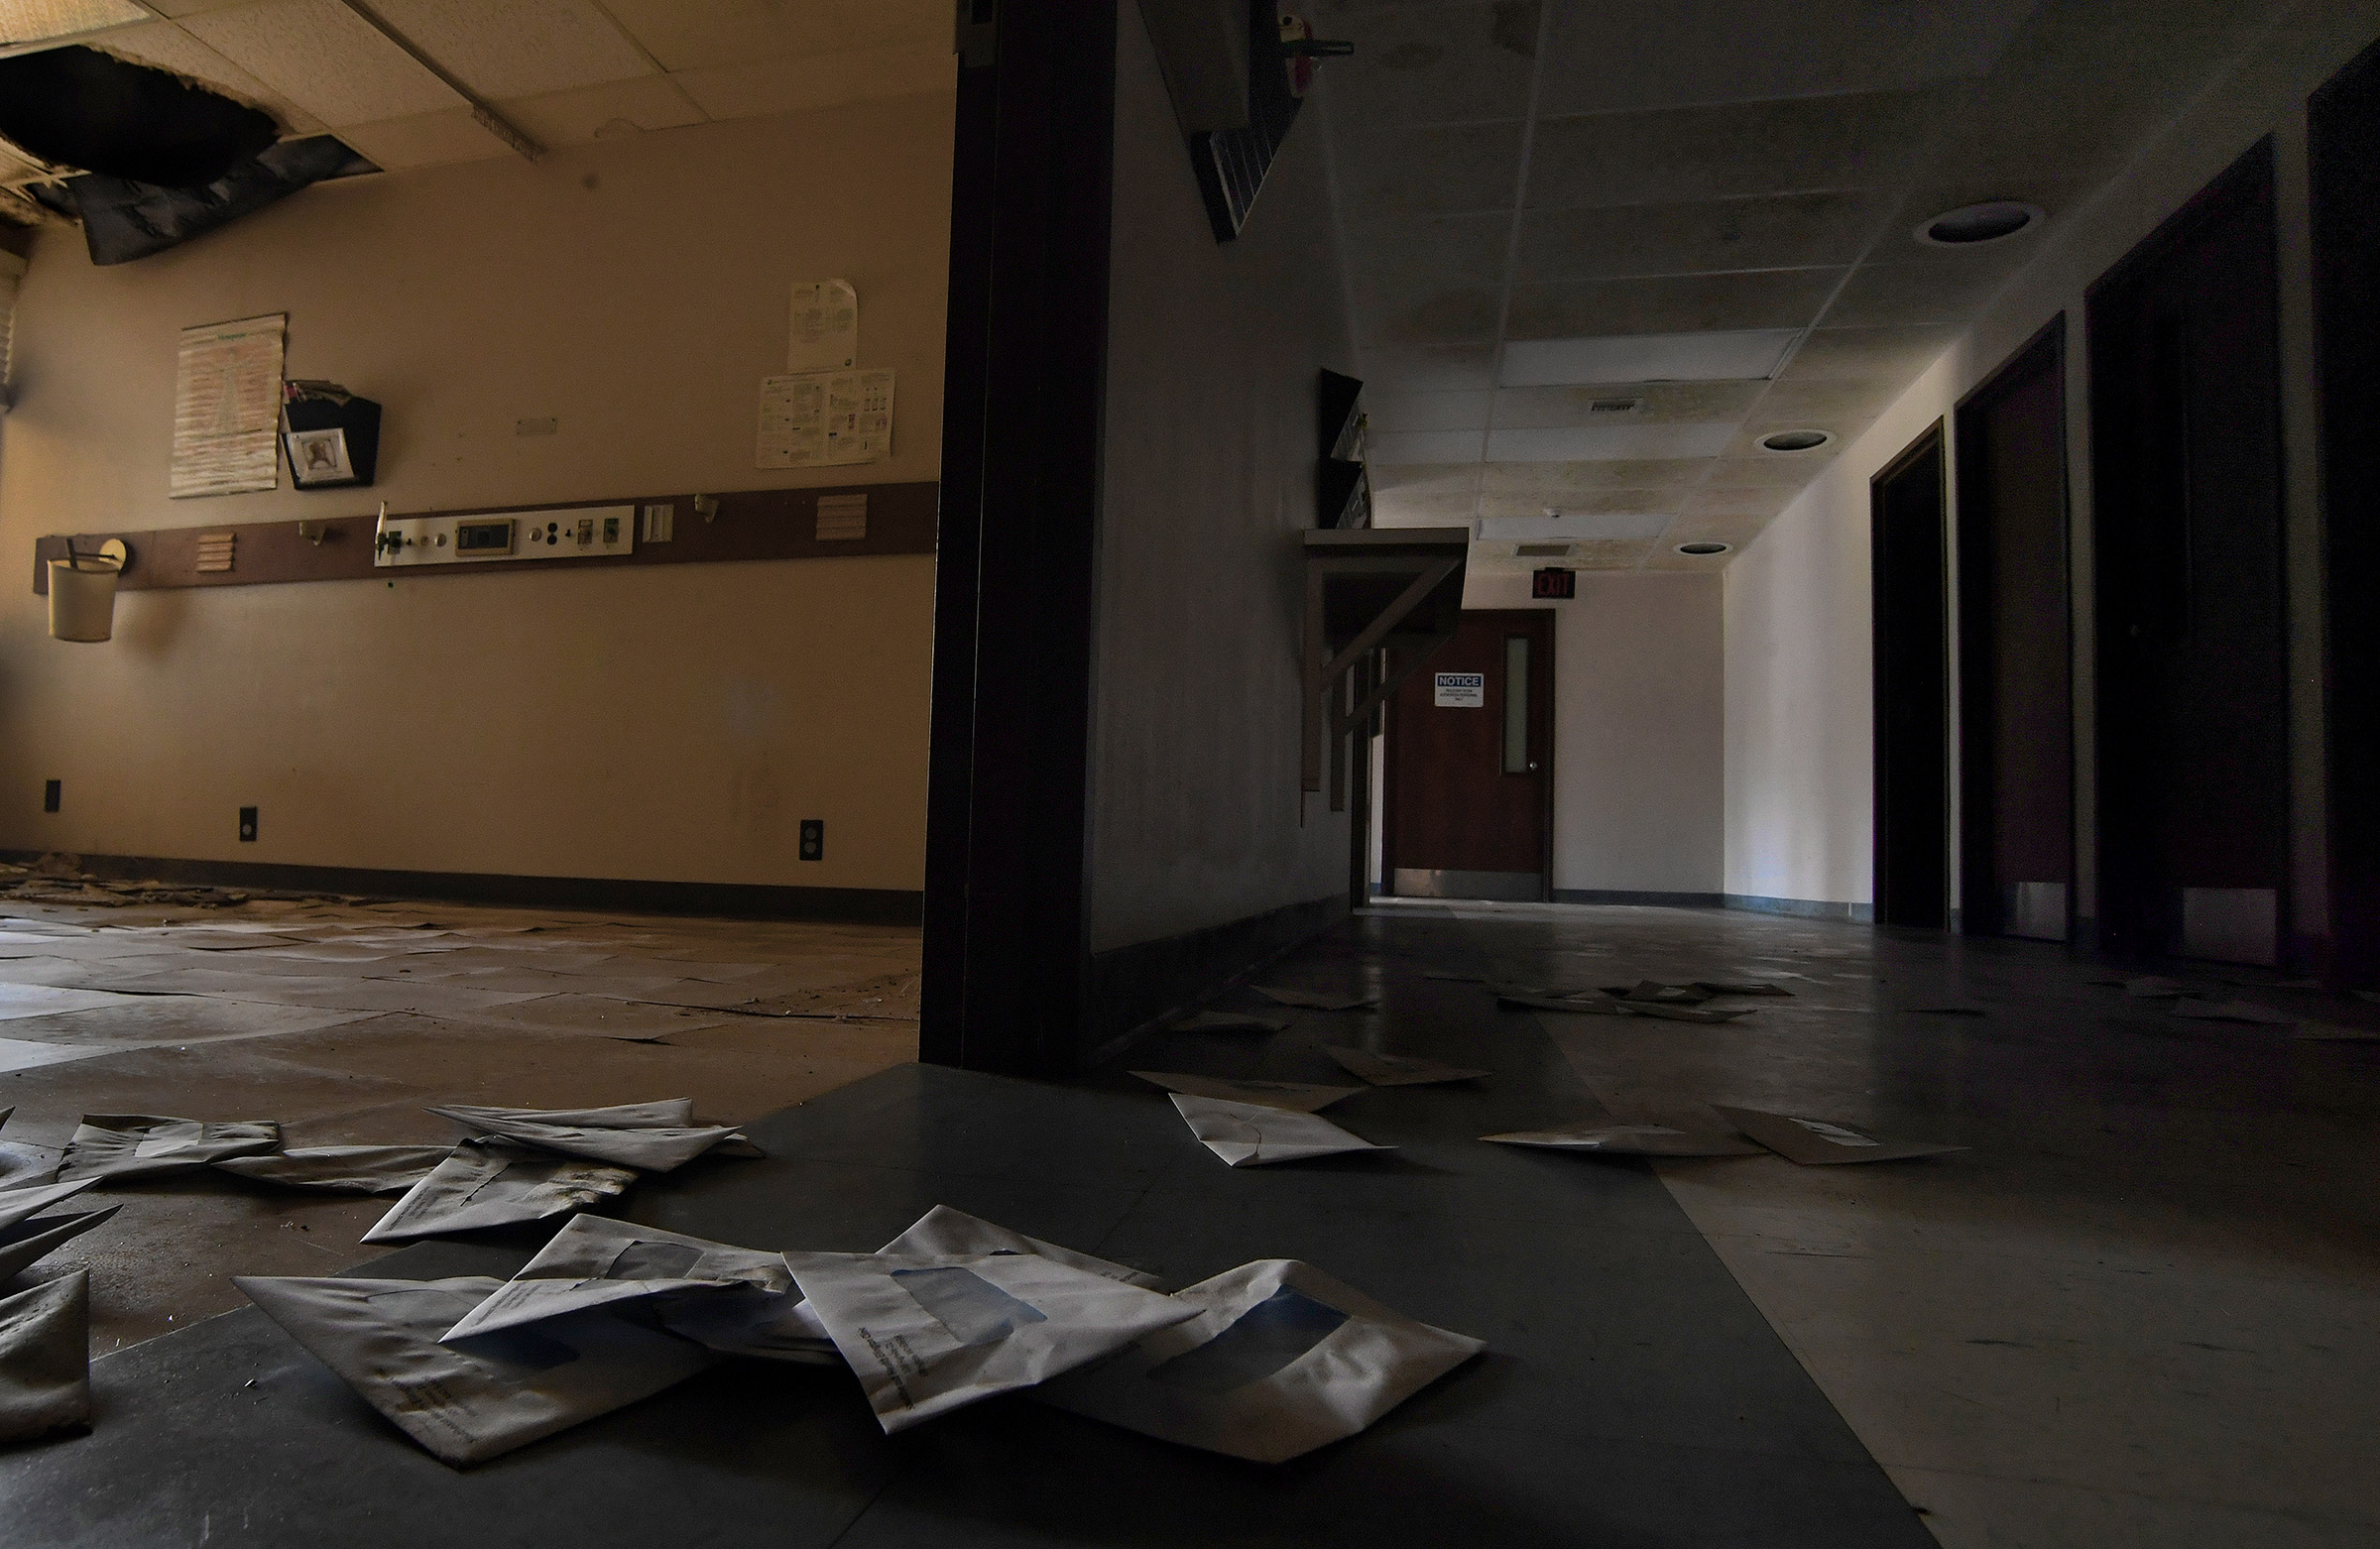 Billing envelopes litter the floor of the shuttered Southeast Health Center                     in Ellington, Missouri on July 19, 2019.